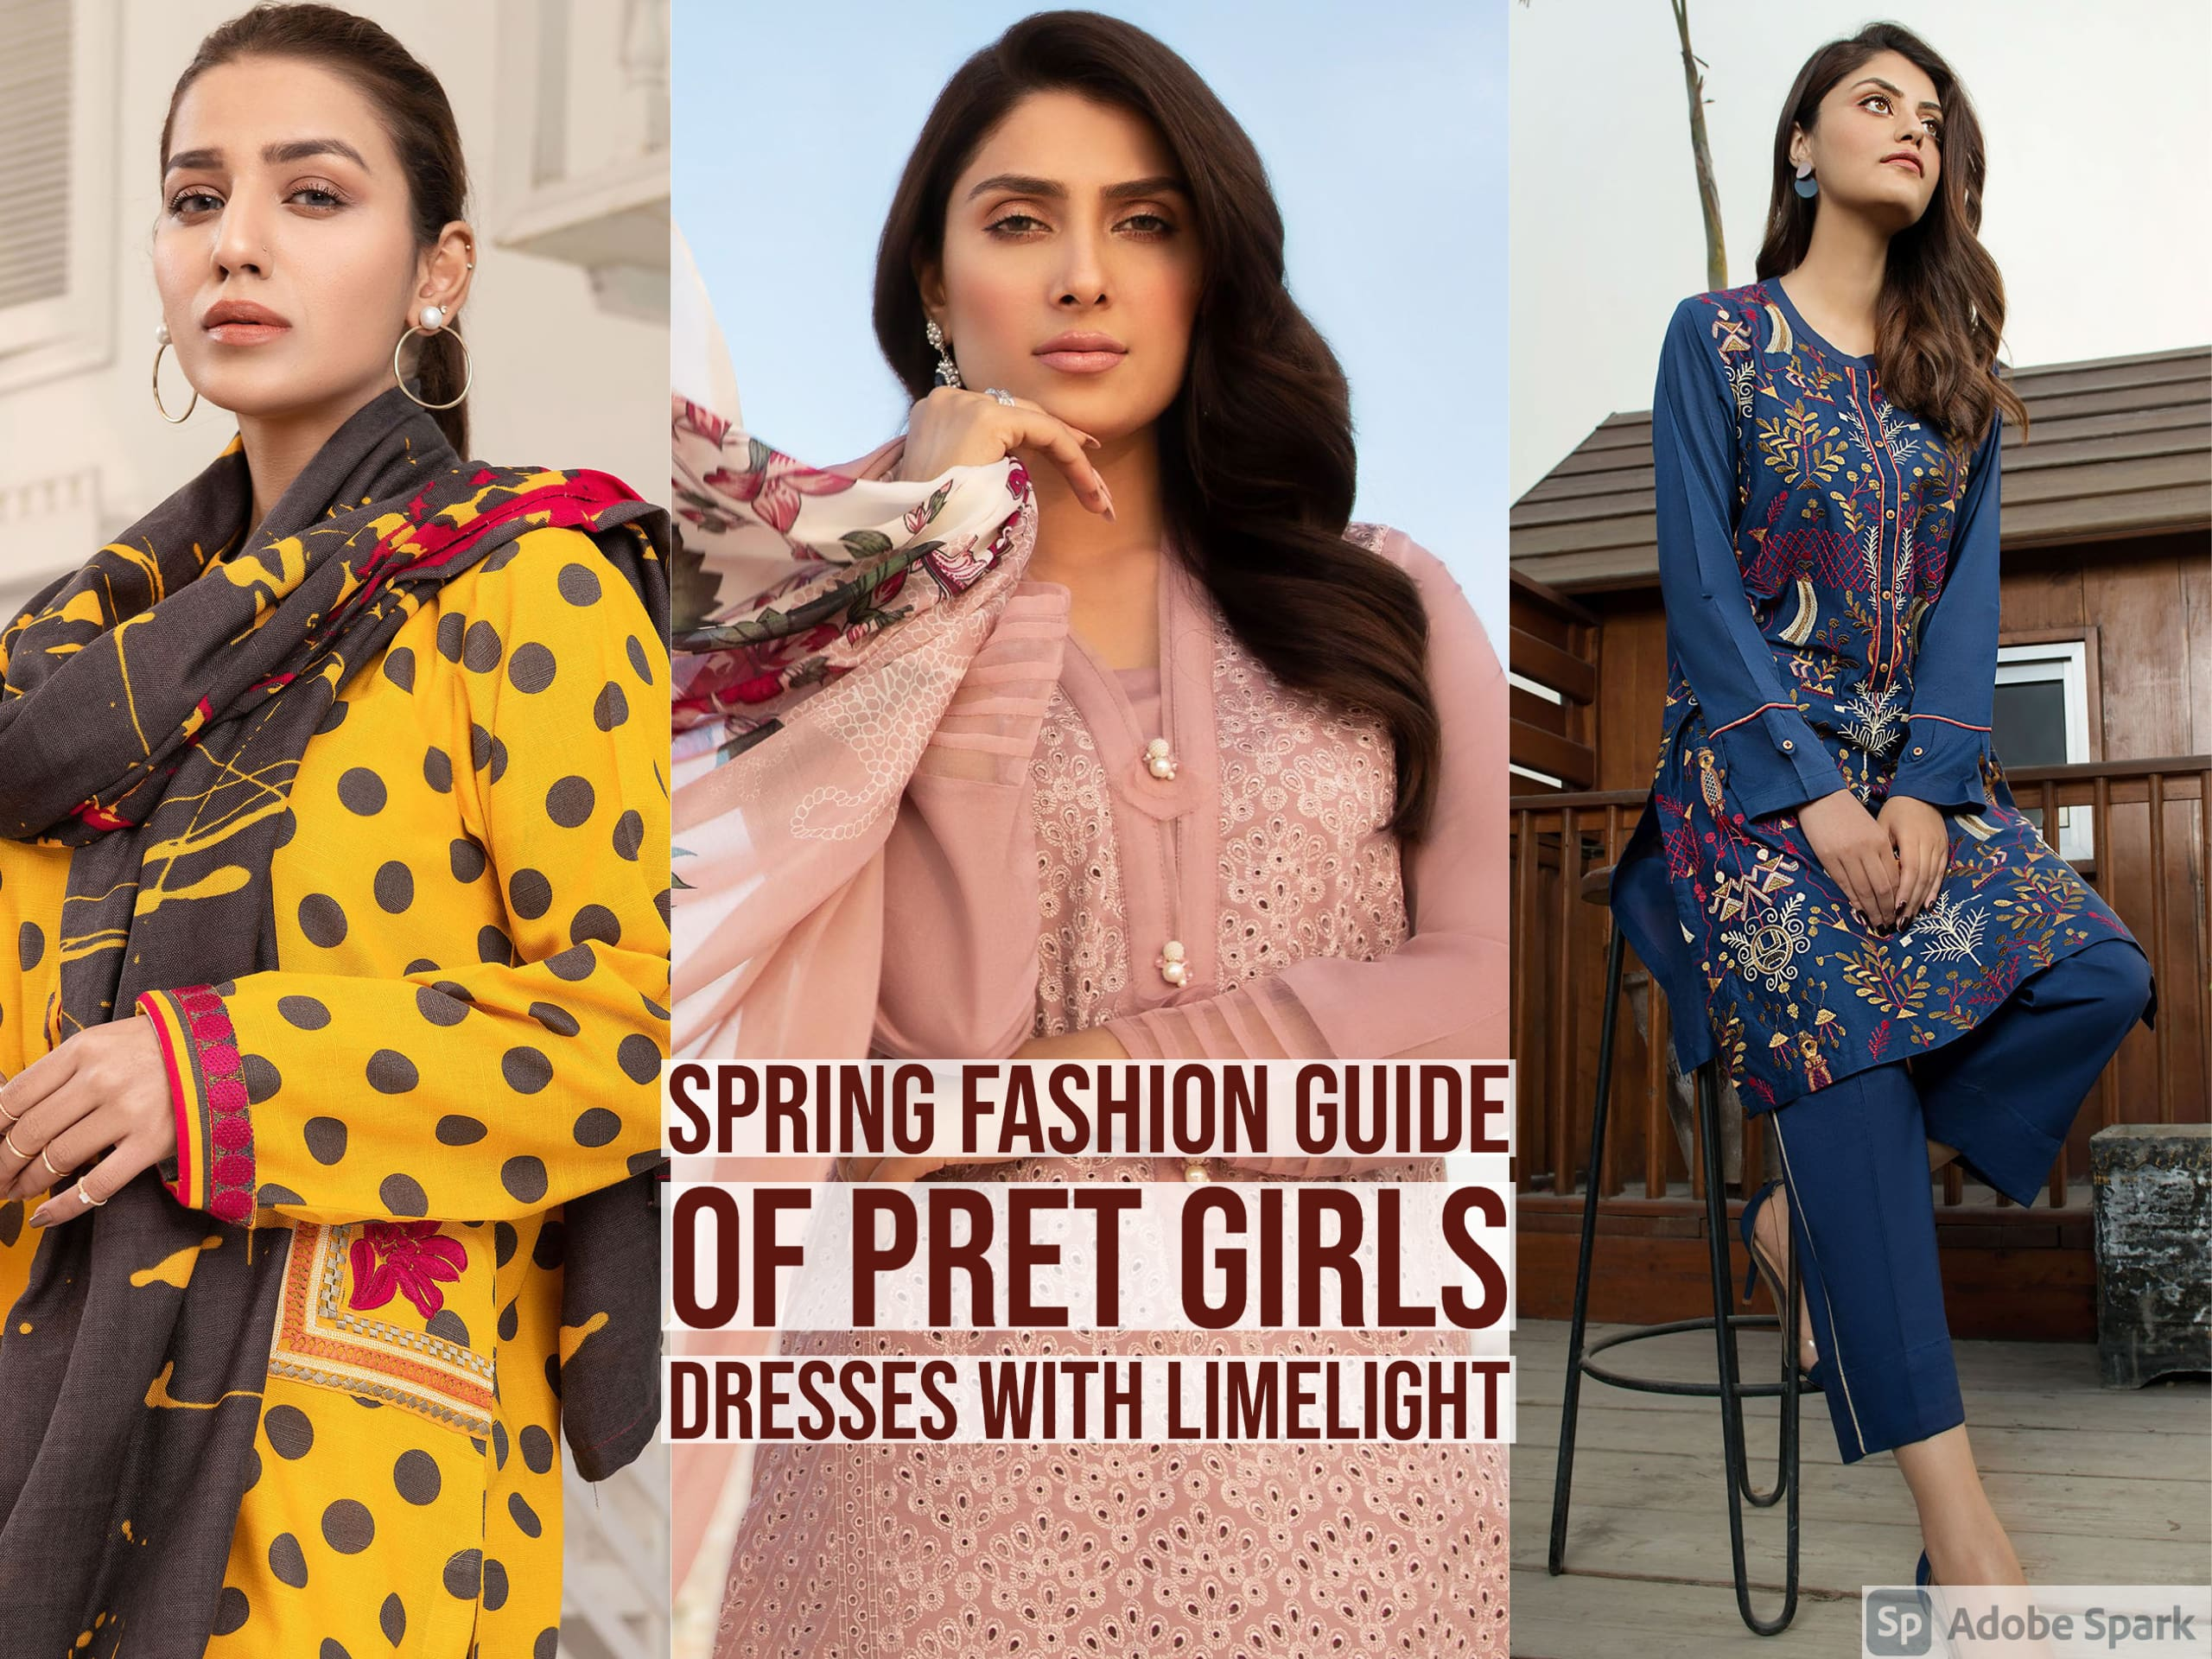 Spring Fashion Guide Of Pret Girls Dresses With Limelight